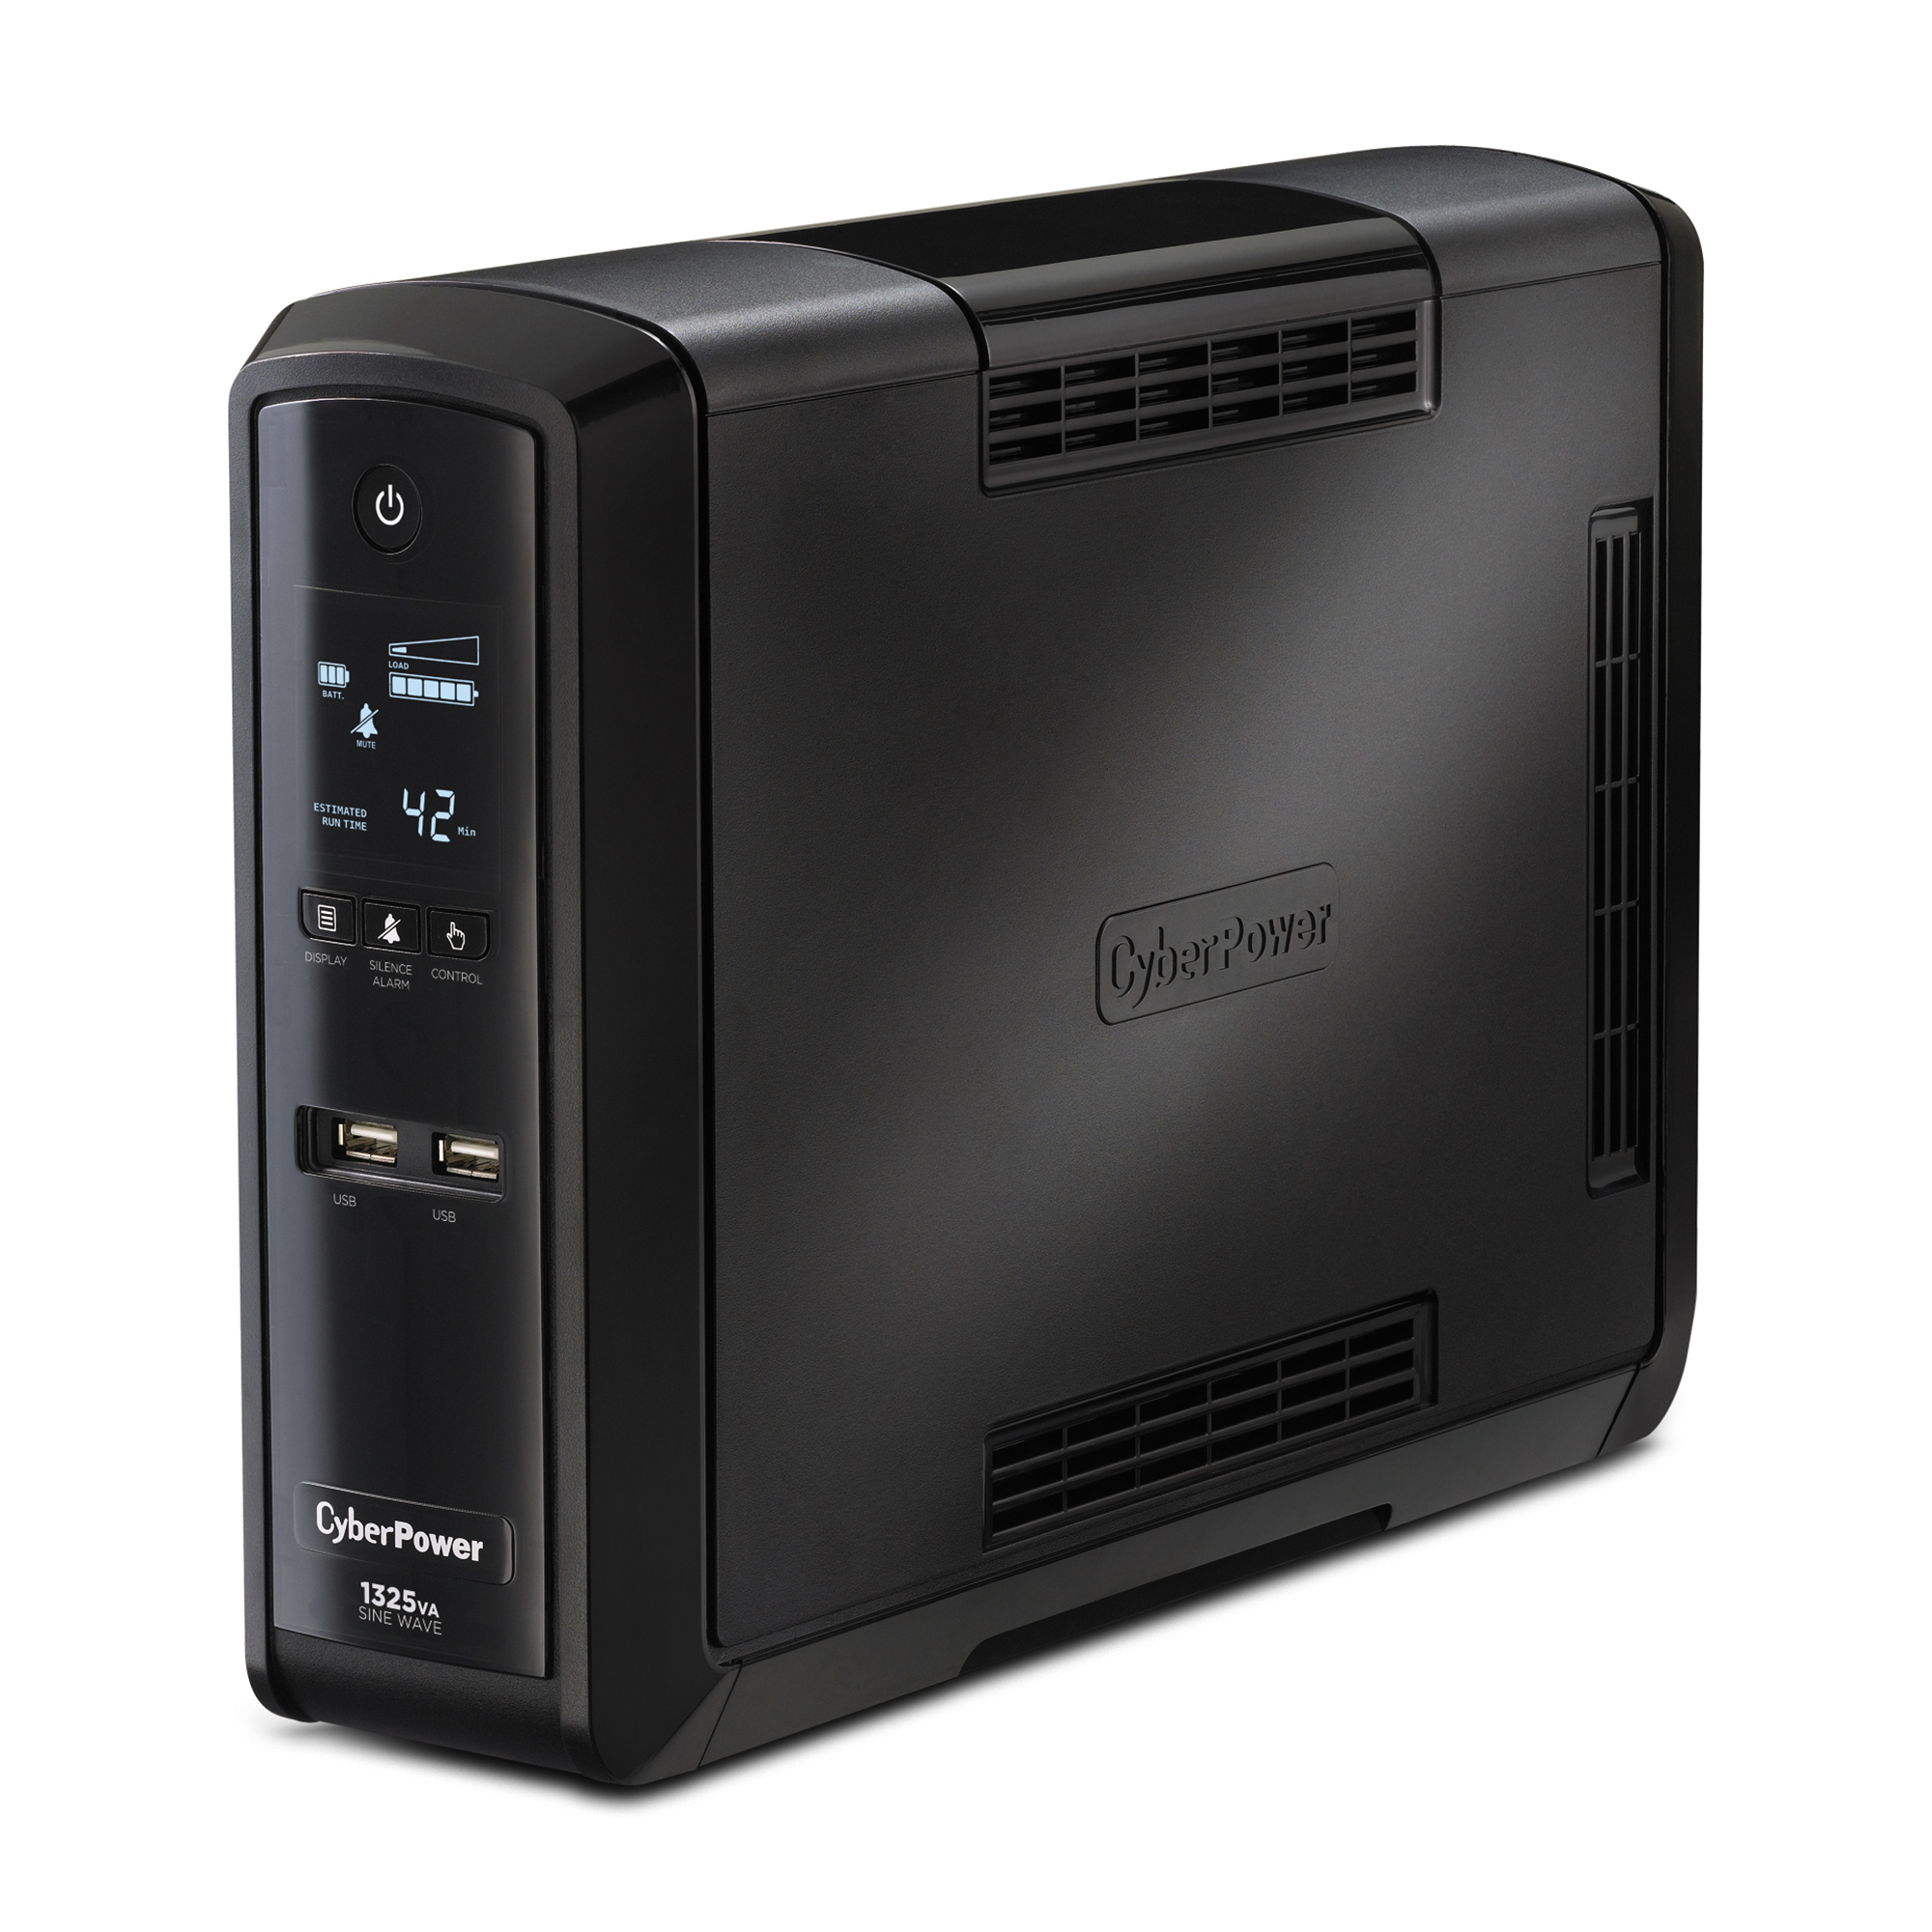 Diy Resistive Load Bank Cyberpower 1325 Va 810 Watts 10 Outlets Ups Pure Sine Wave Ups With Usb Charging Ports Gx1325u Newegg